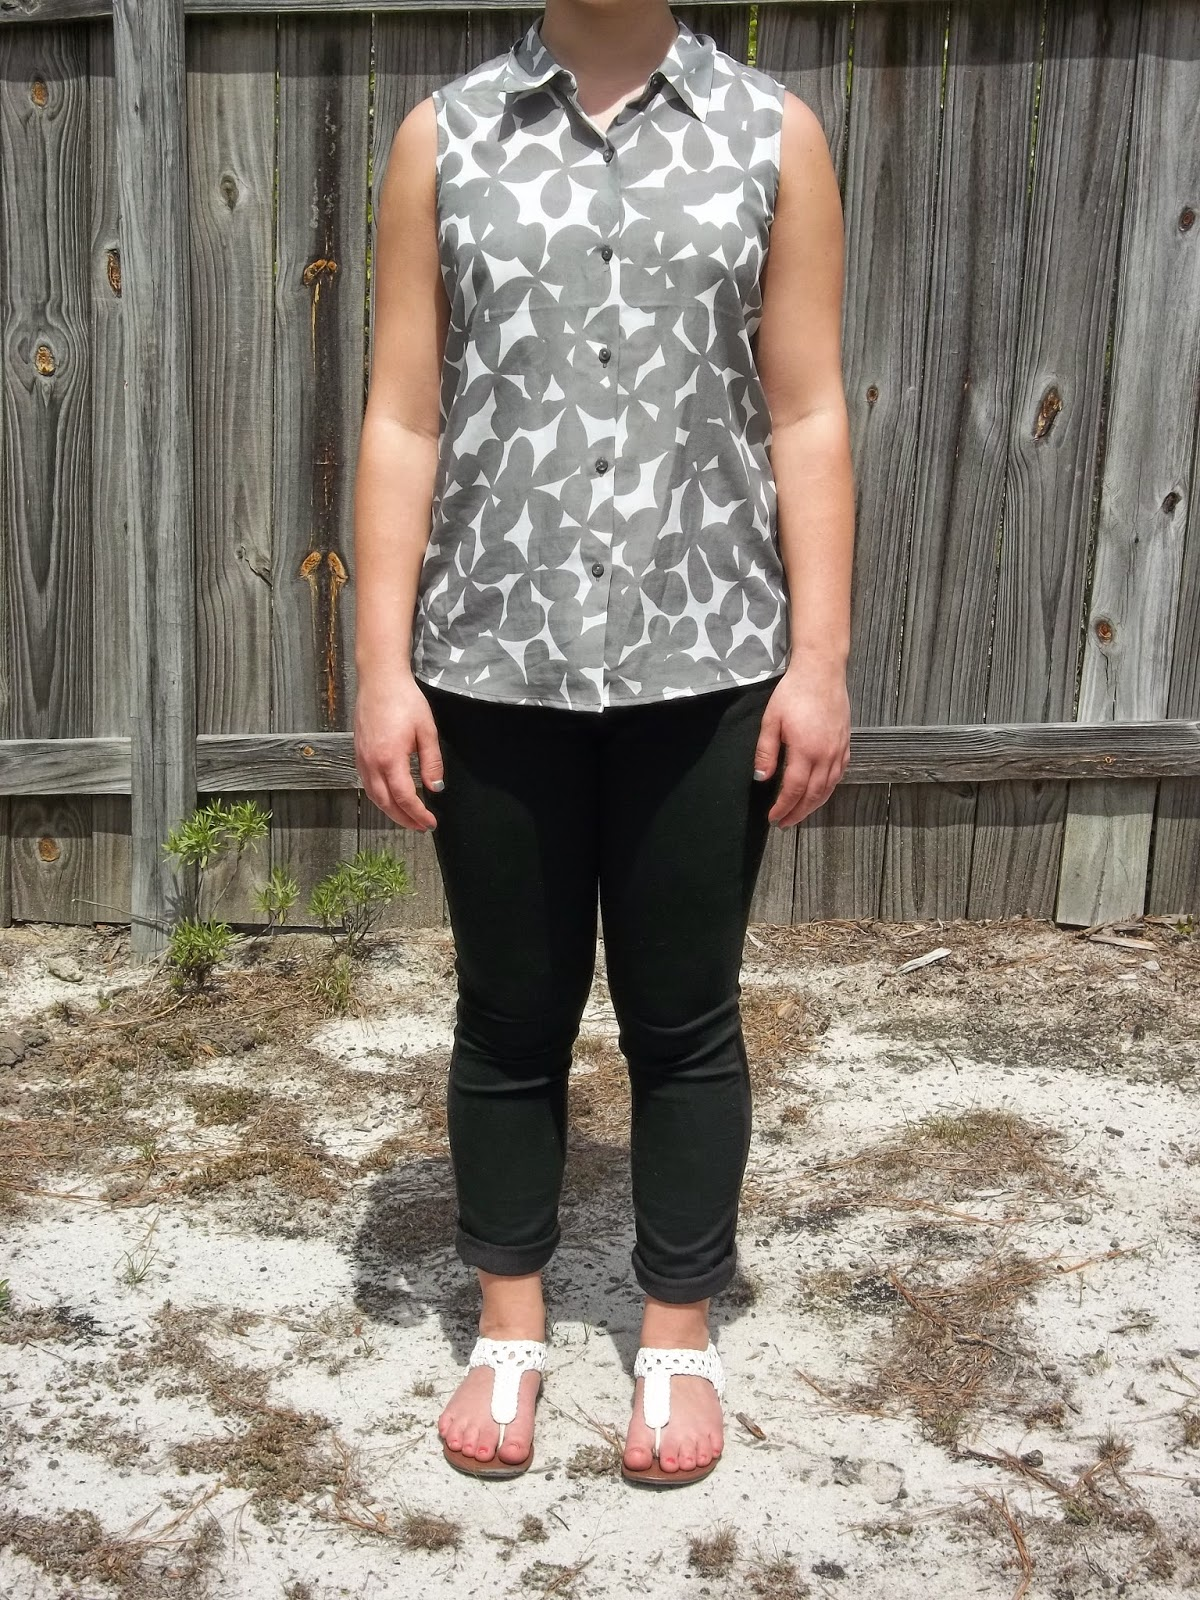 Spring Inspirations. Grey button down tank, black skinny jeans, white sandals. http://mybowsandclothes.blogspot.com/. #styleblogger #sblogger #outfit #outfitpost #outfitinspiration #sandals #spring